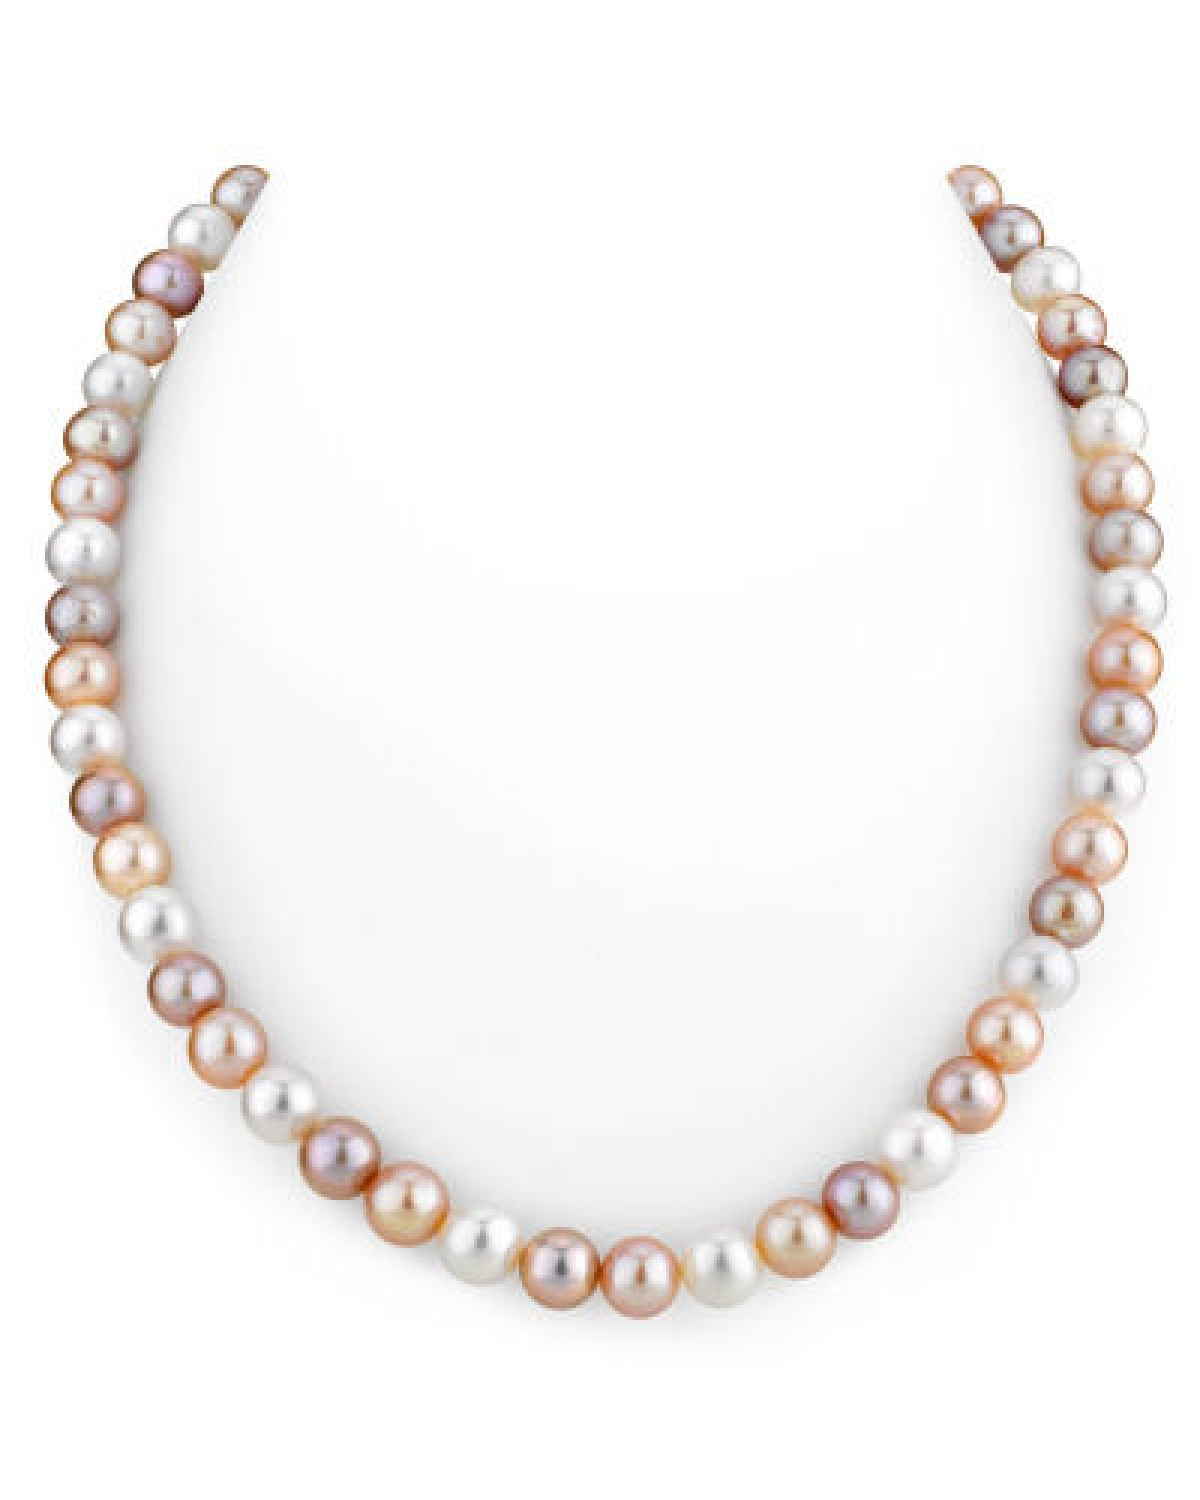 78mm Freshwater Multicolor Pearl Necklaceaaaa Quality